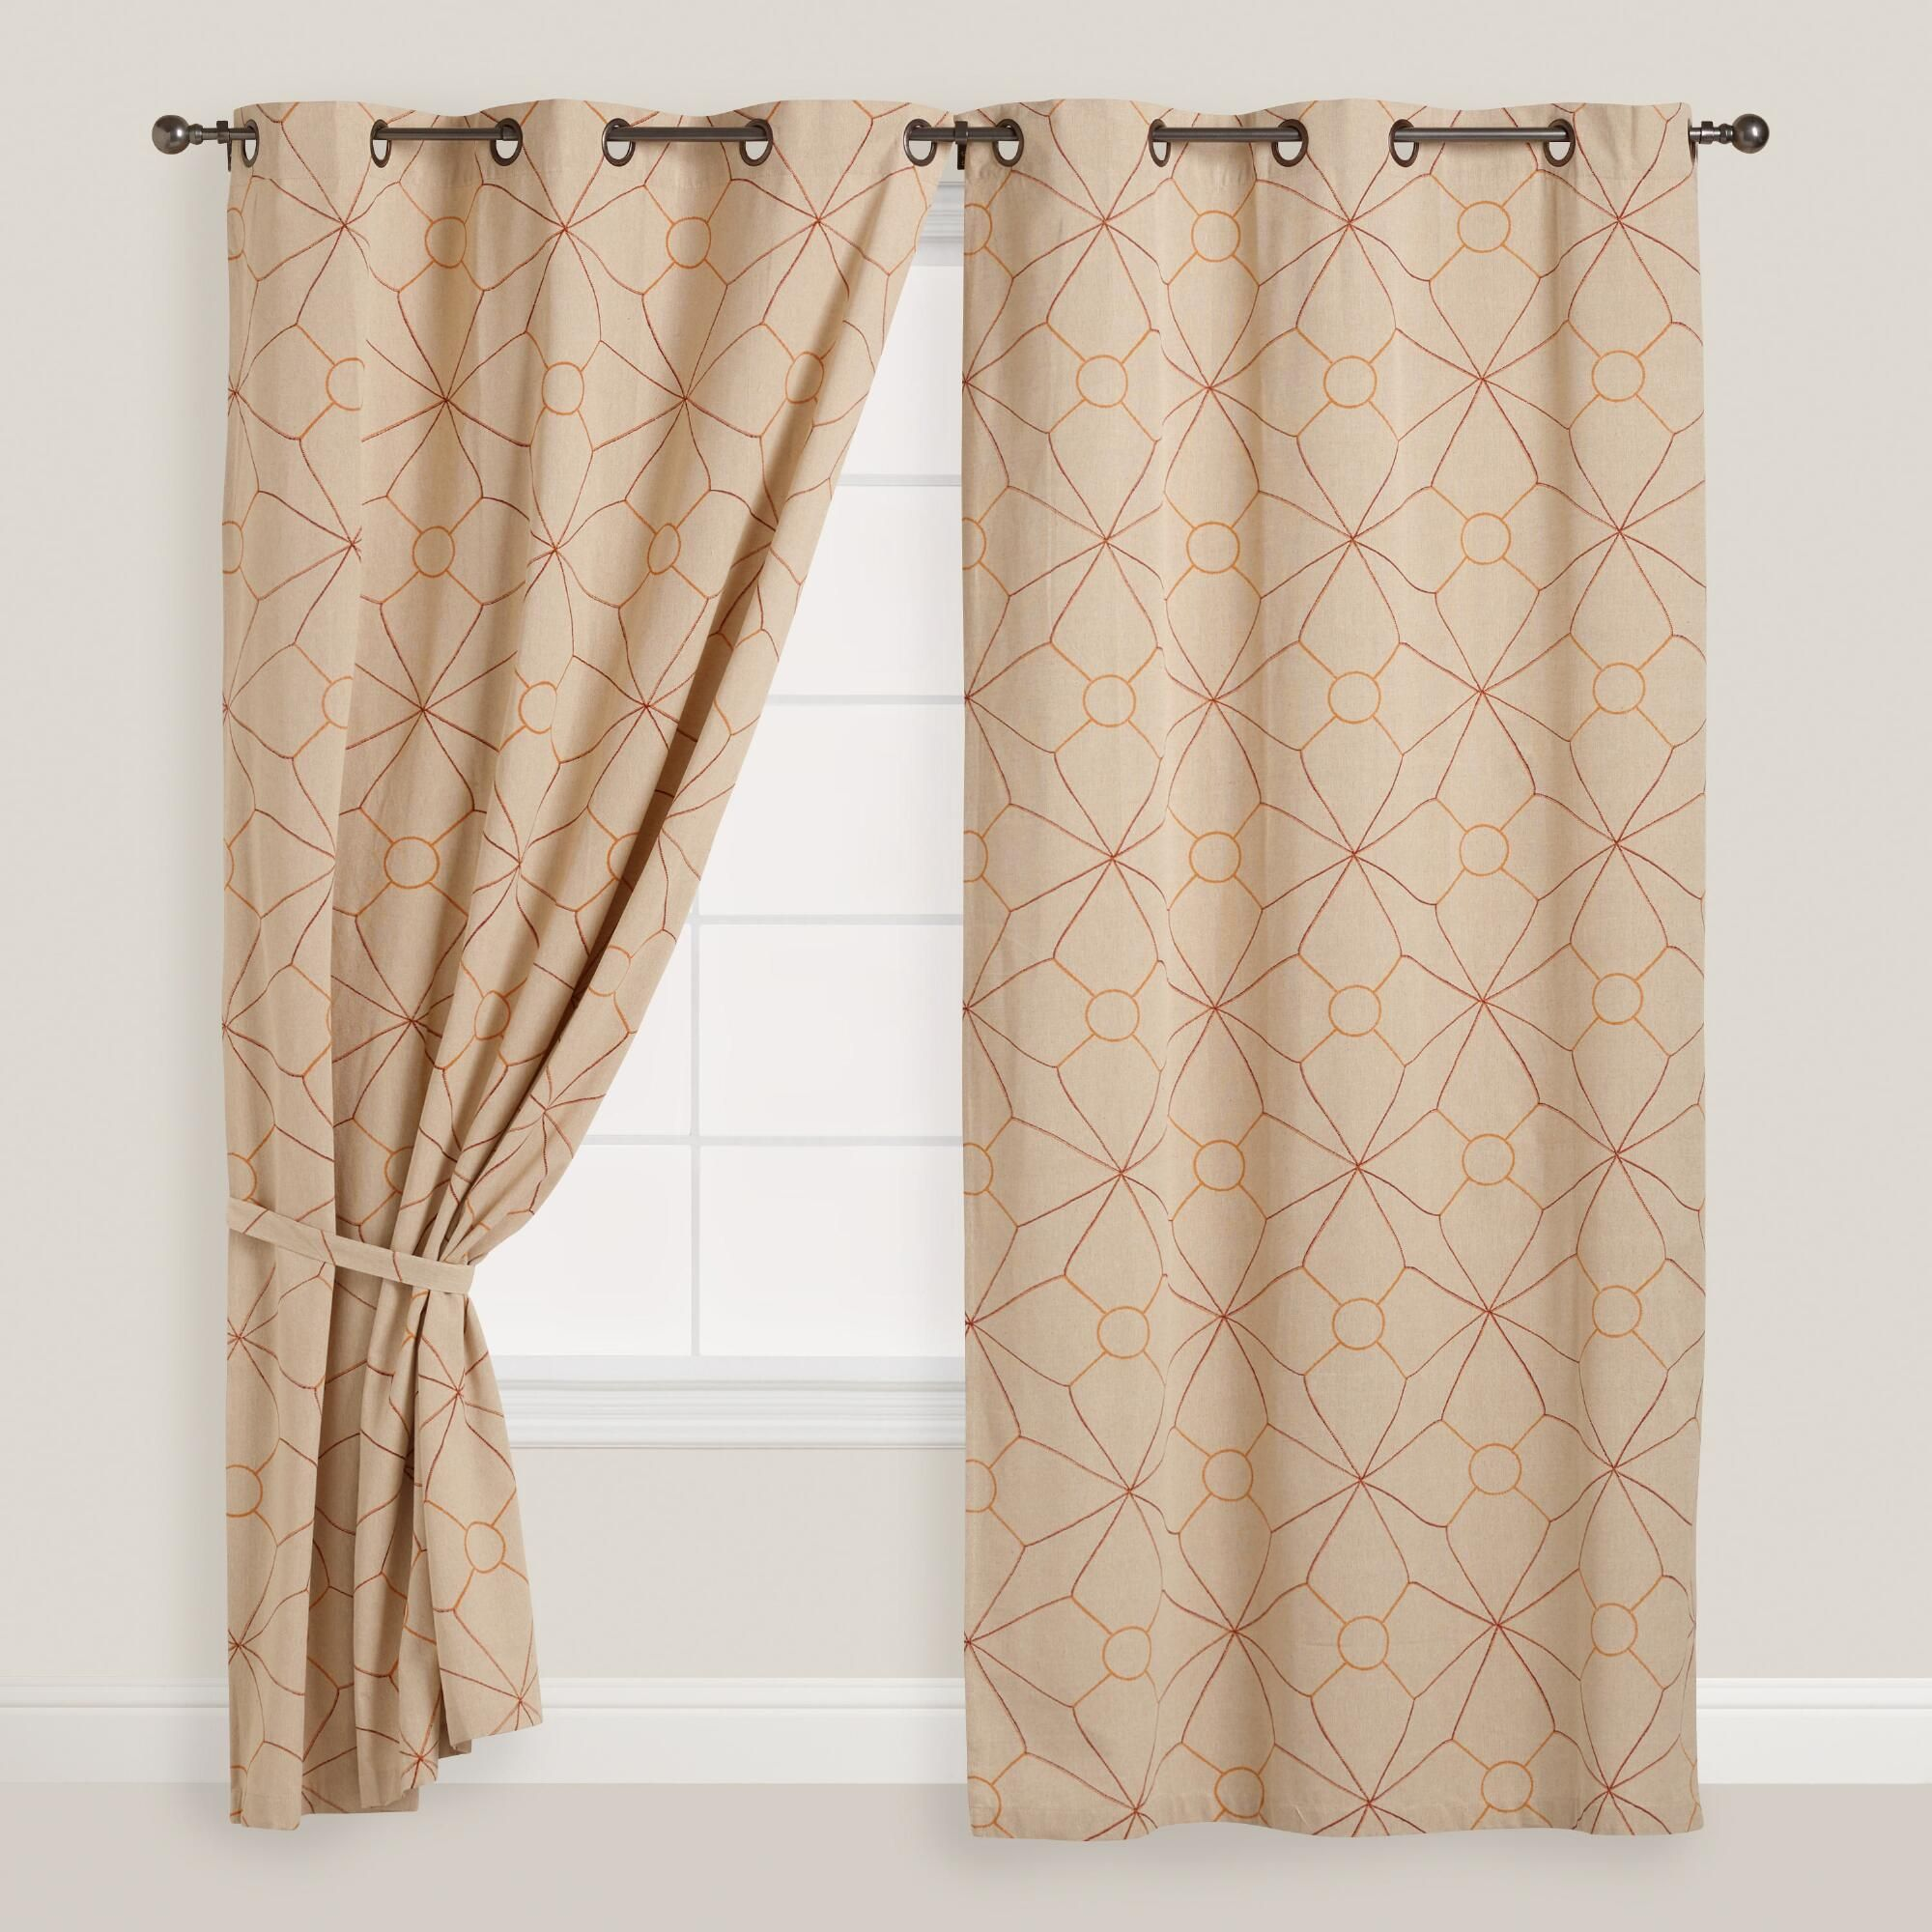 market curtain set voile crinkle treatments of chambray do cotton sheer category window xxx drapes rugs white world curtains